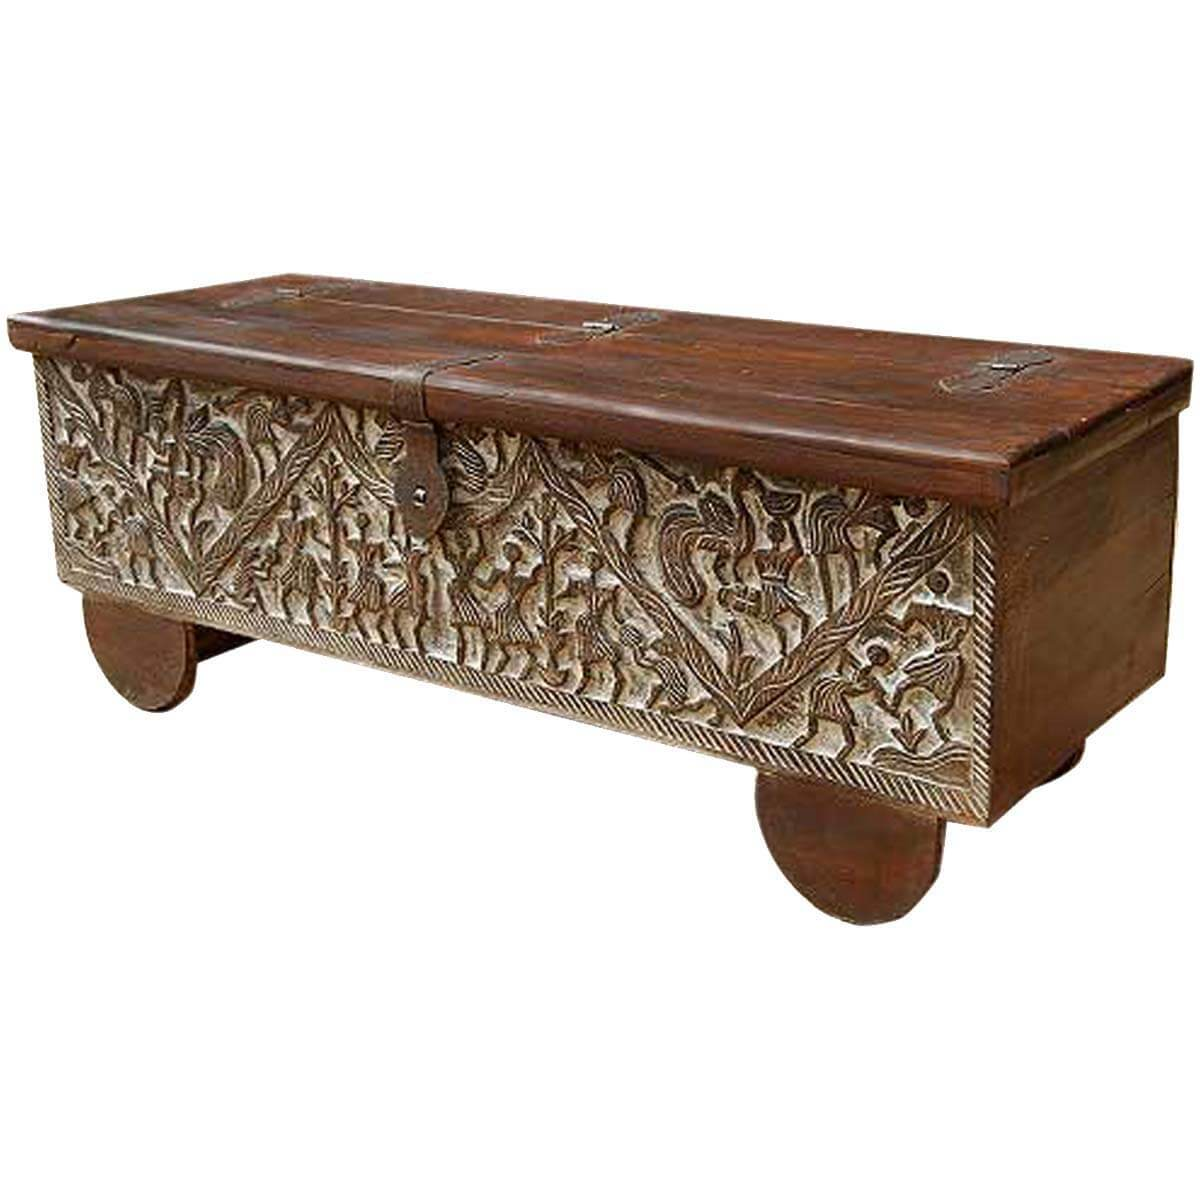 Wood Coffee Table With Storage Masterpiece Hand Carved Mango Wood Storage Trunk Coffee Table